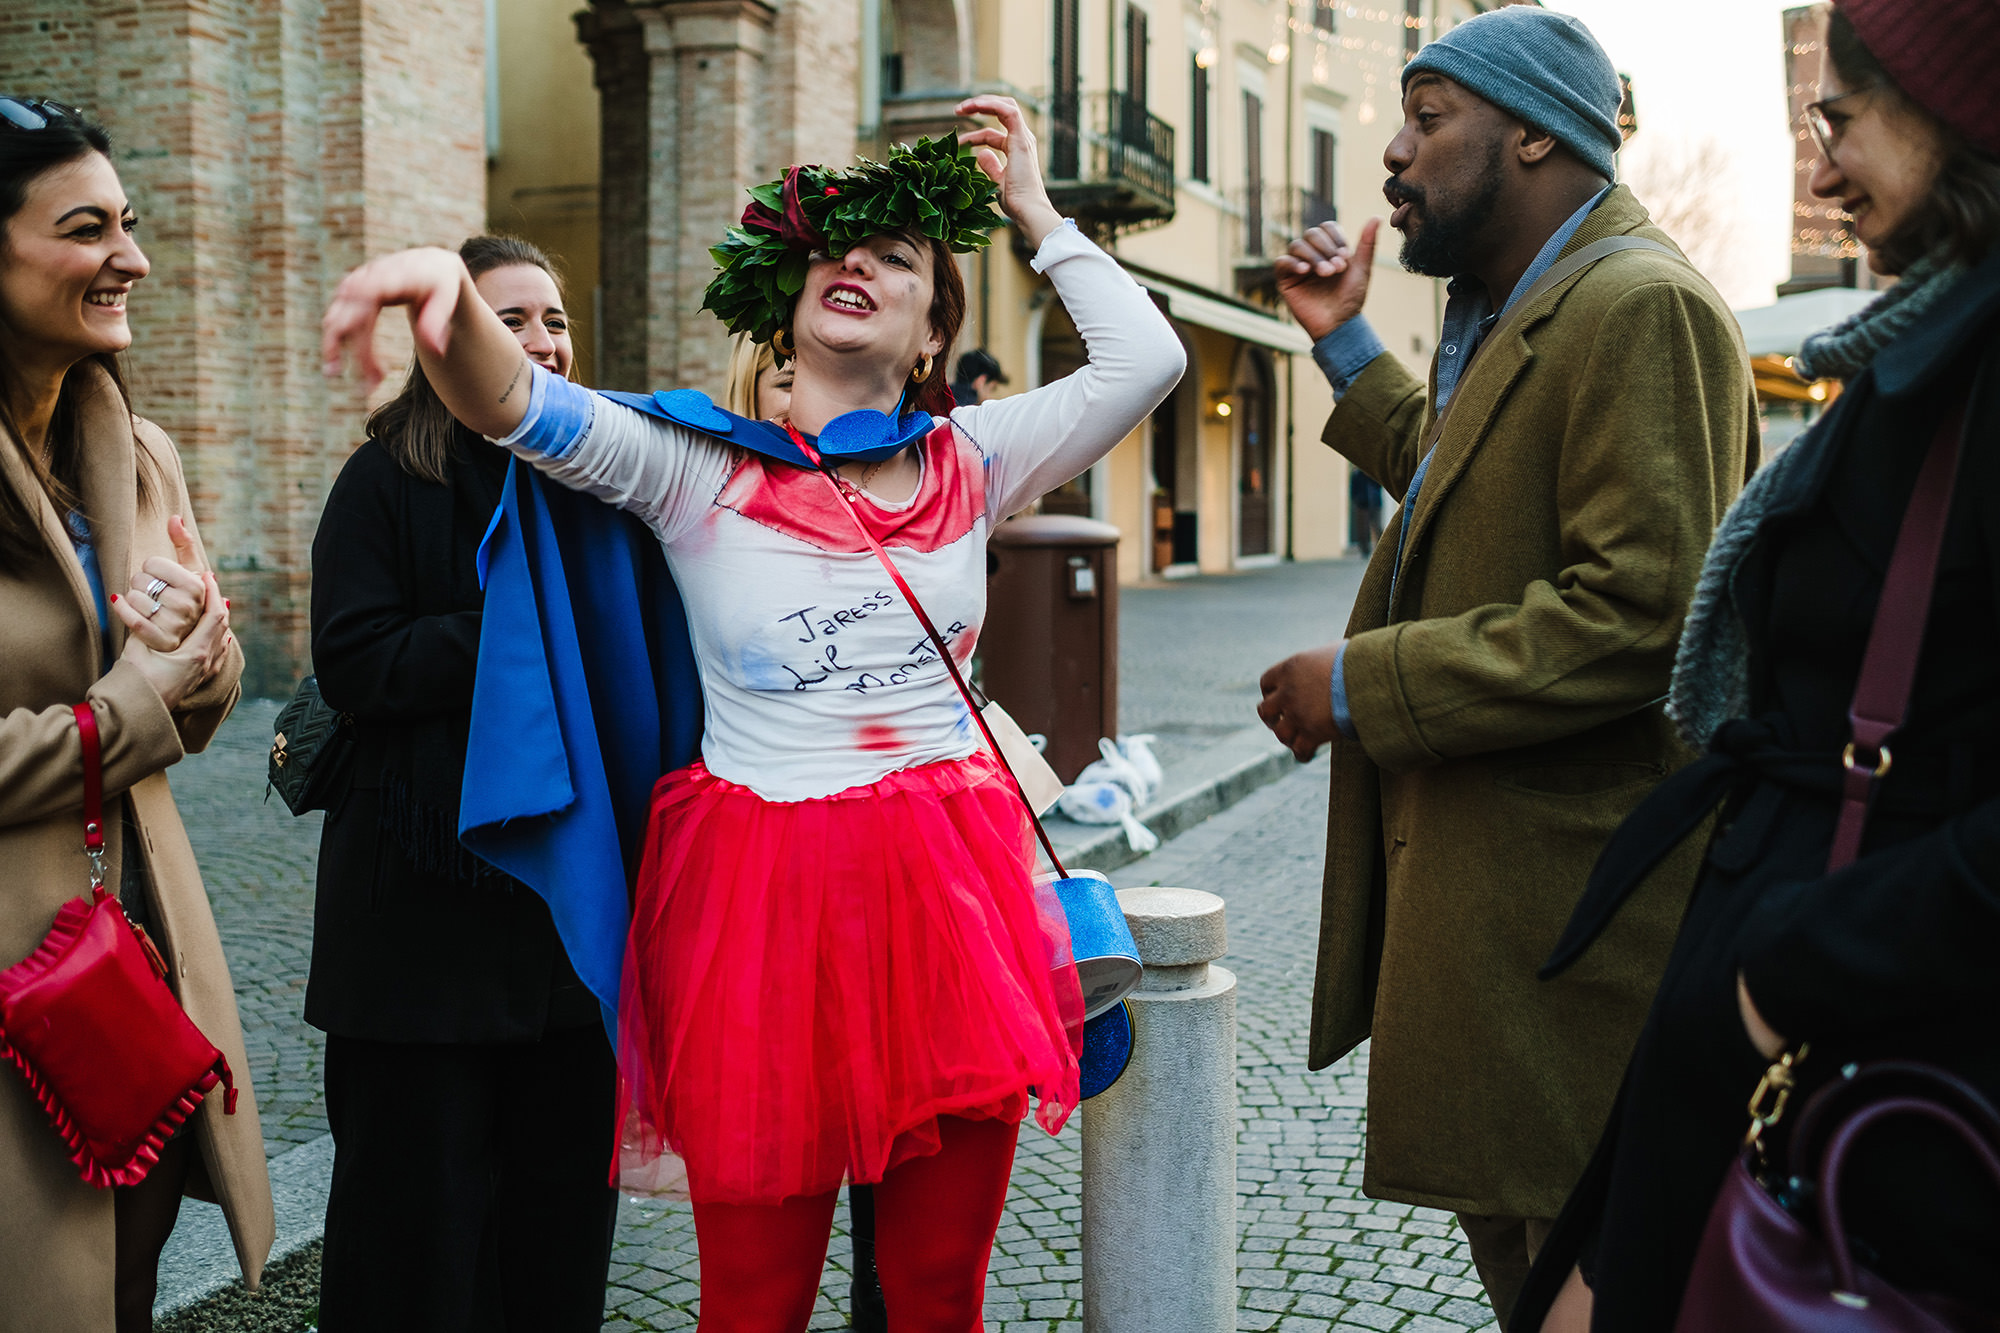 graduation event in italy documenting university life